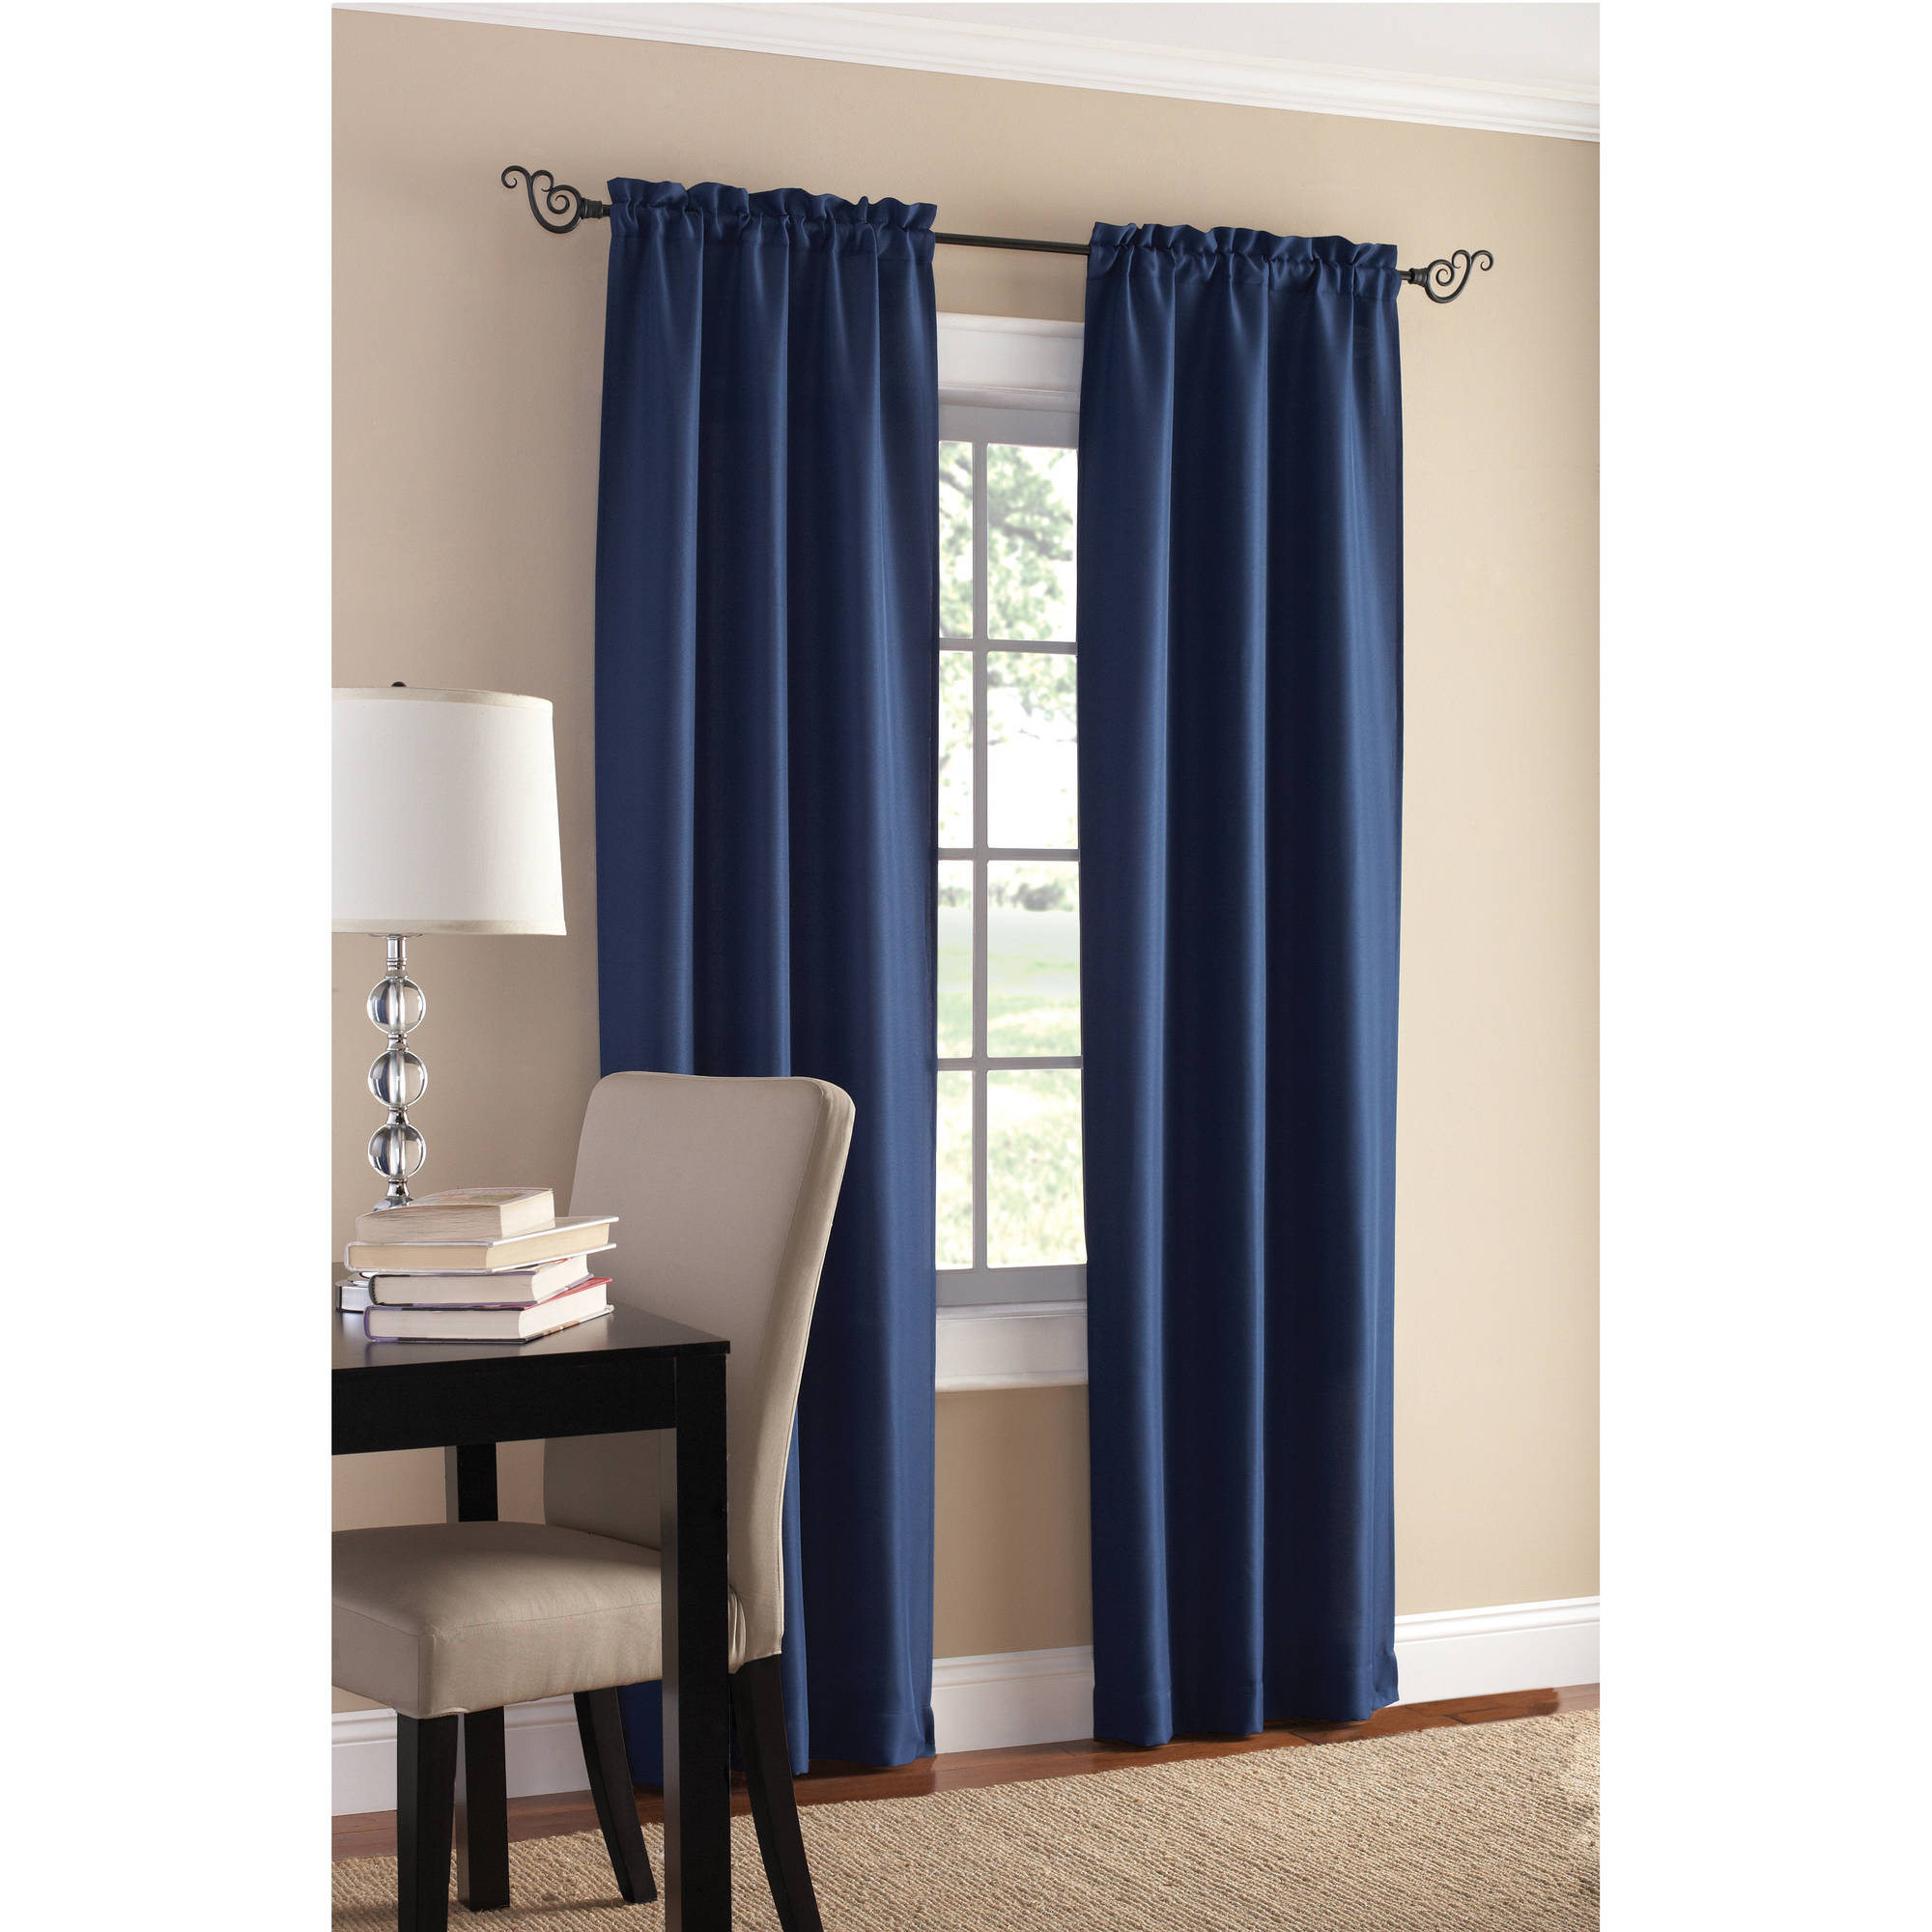 Cheap Blackout Curtains for Inspiring Home Decorating Ideas: Blackout Curtain Panels | Cheap Blackout Curtains | Blackout Curtains Clearance